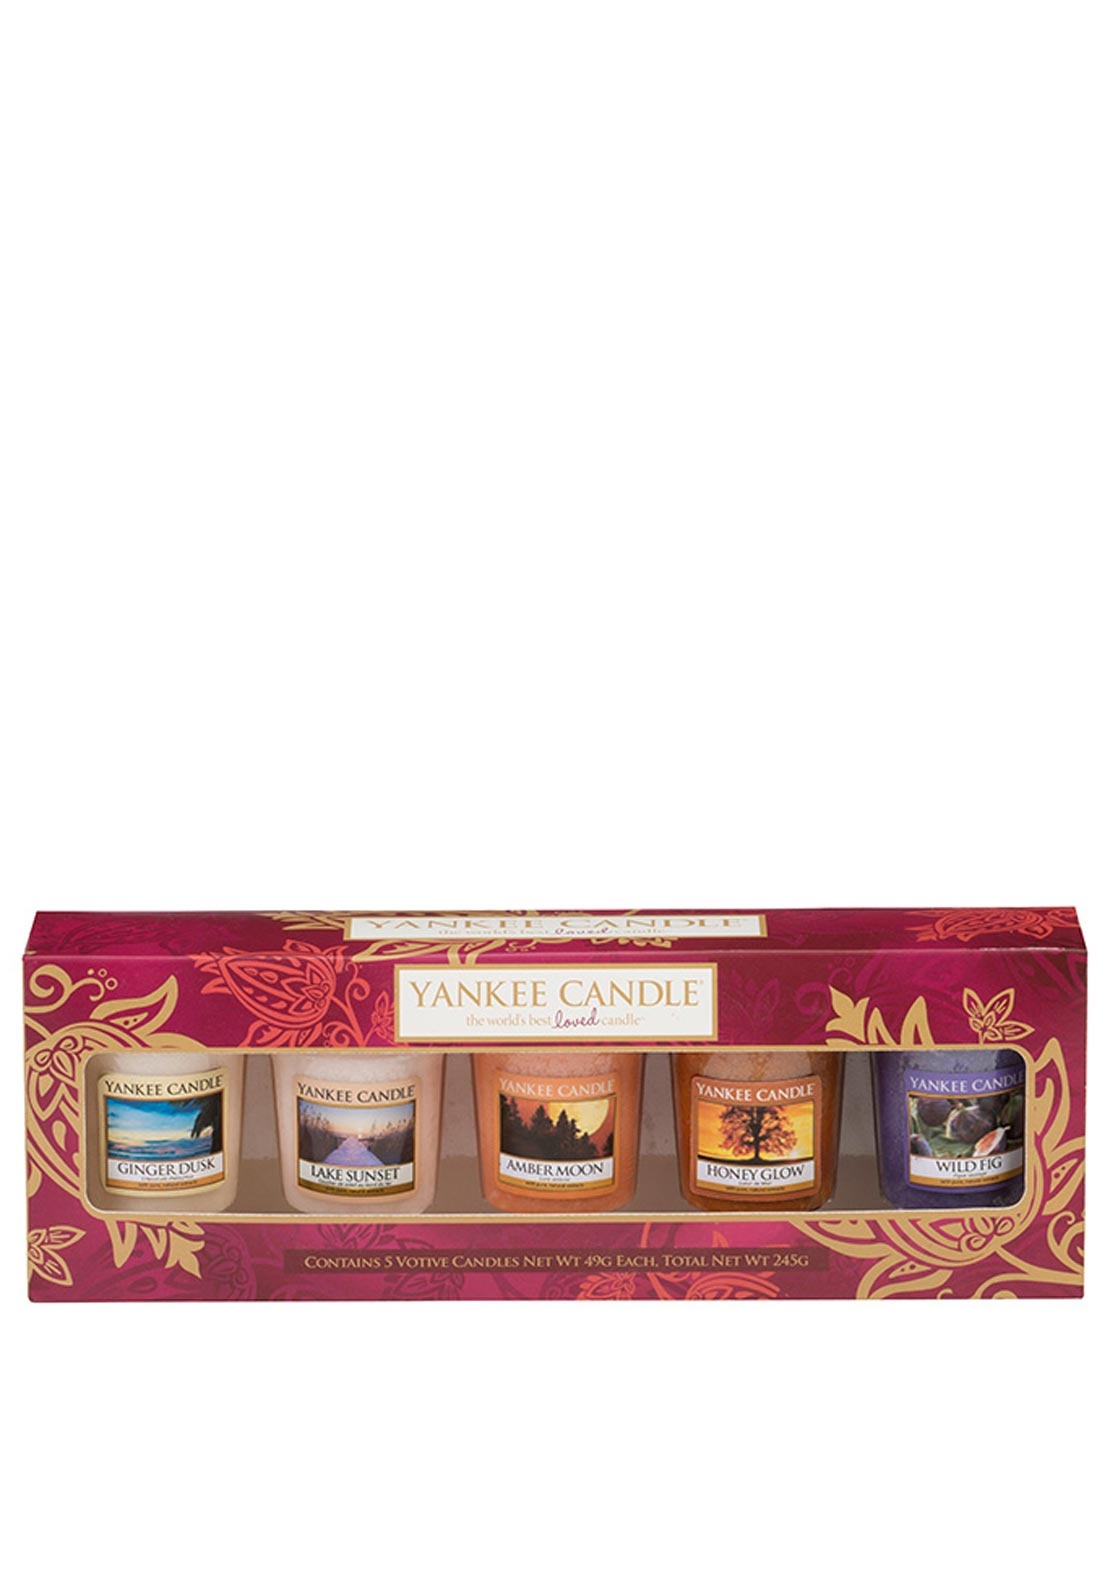 Yankee Candle Buckets and Samplers Gift Set, Indian Summer